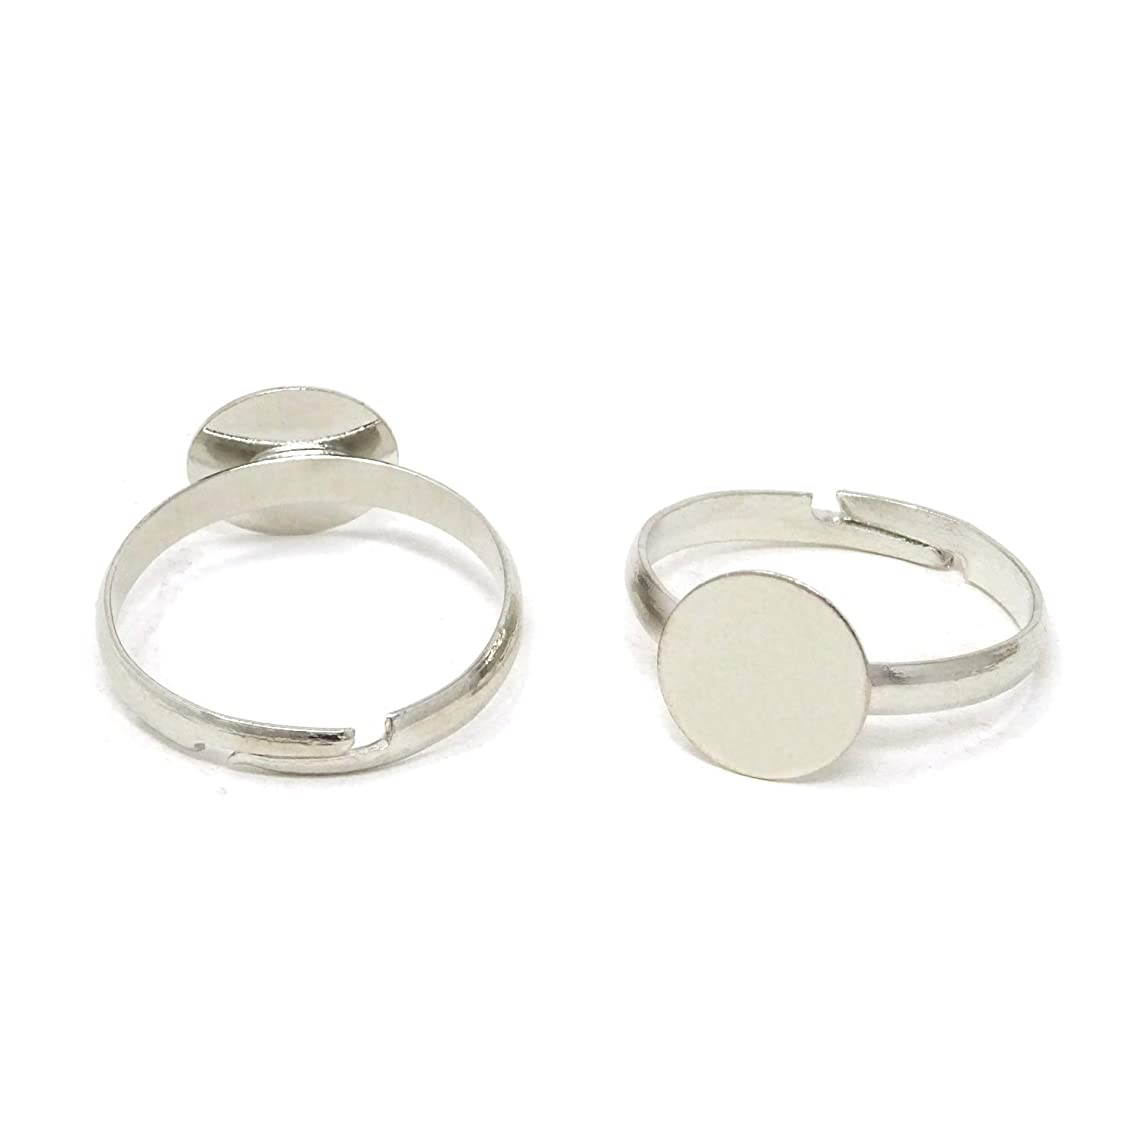 Honbay 20PCS Adjustable Blank Rings with 10mm Flat Bases Jewelry Making Supplies